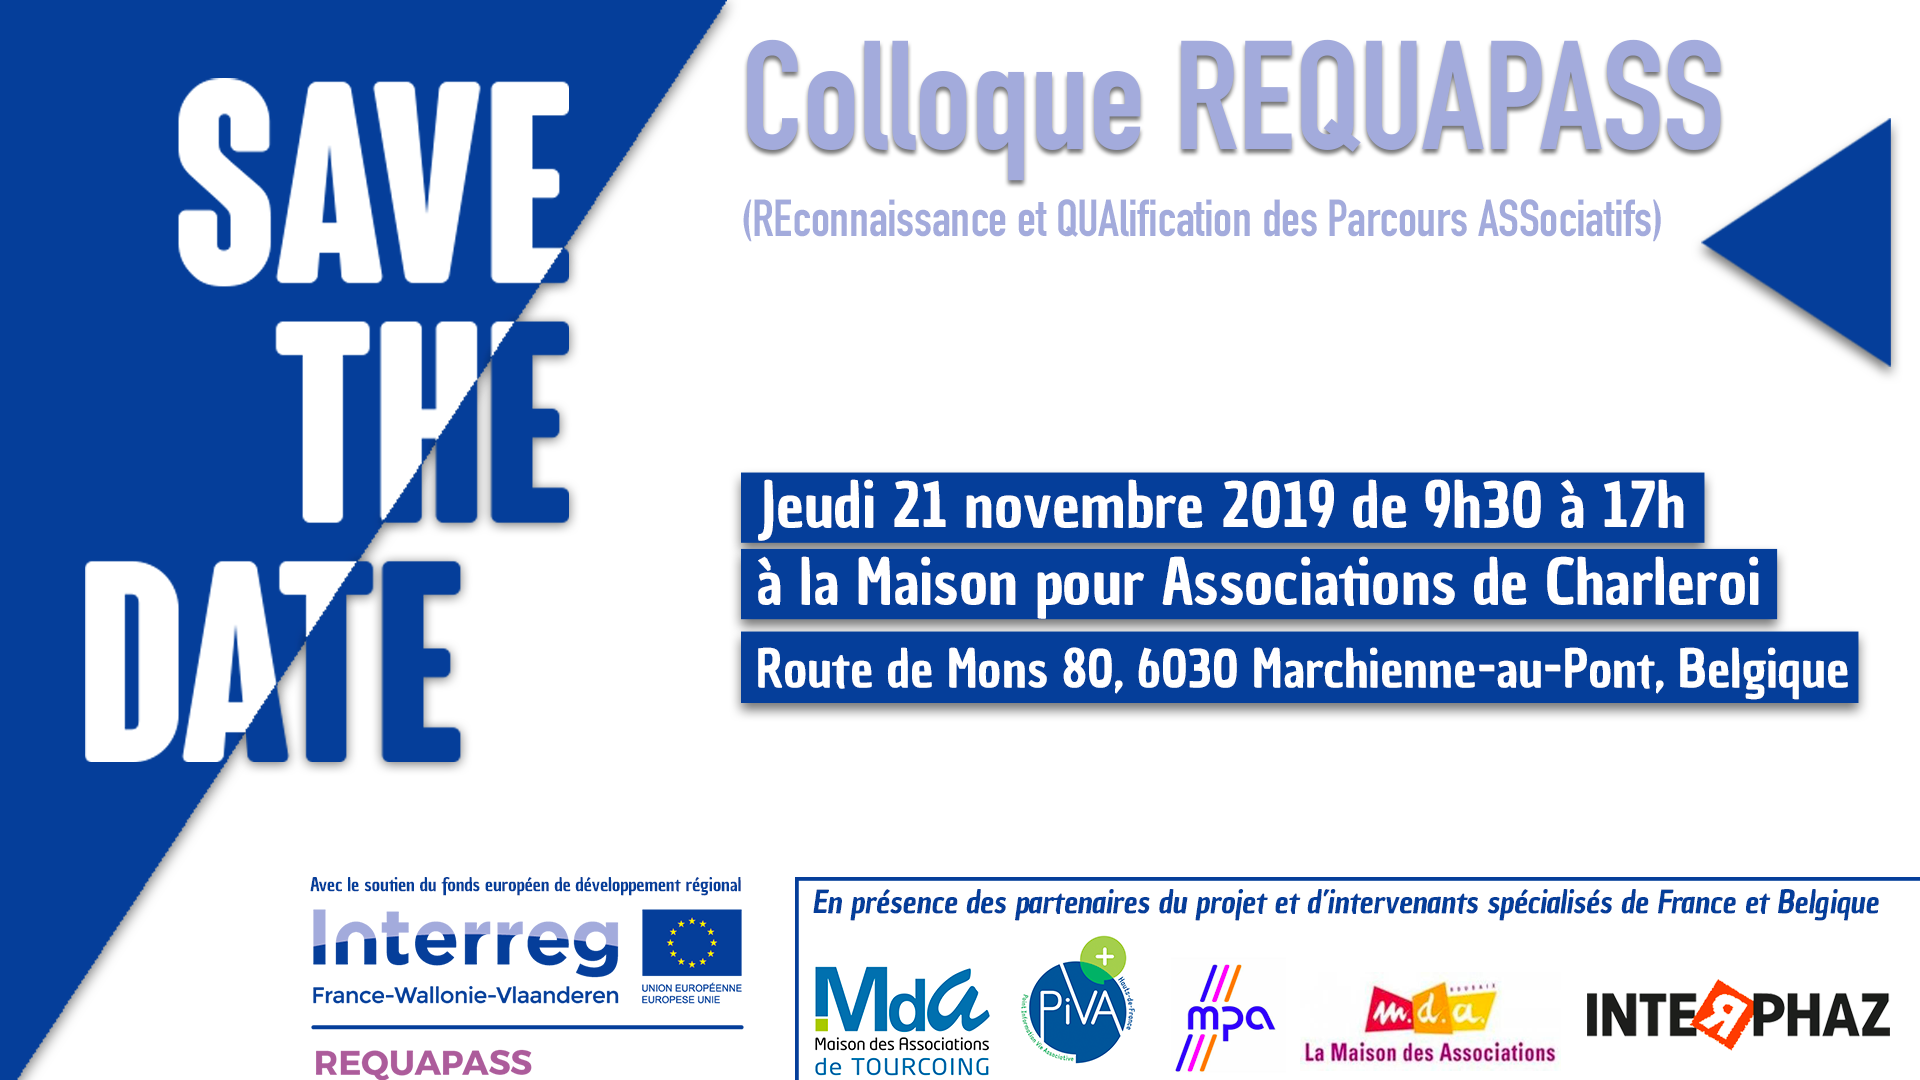 SaveTheDate-ColloqueREQUAPASS.png